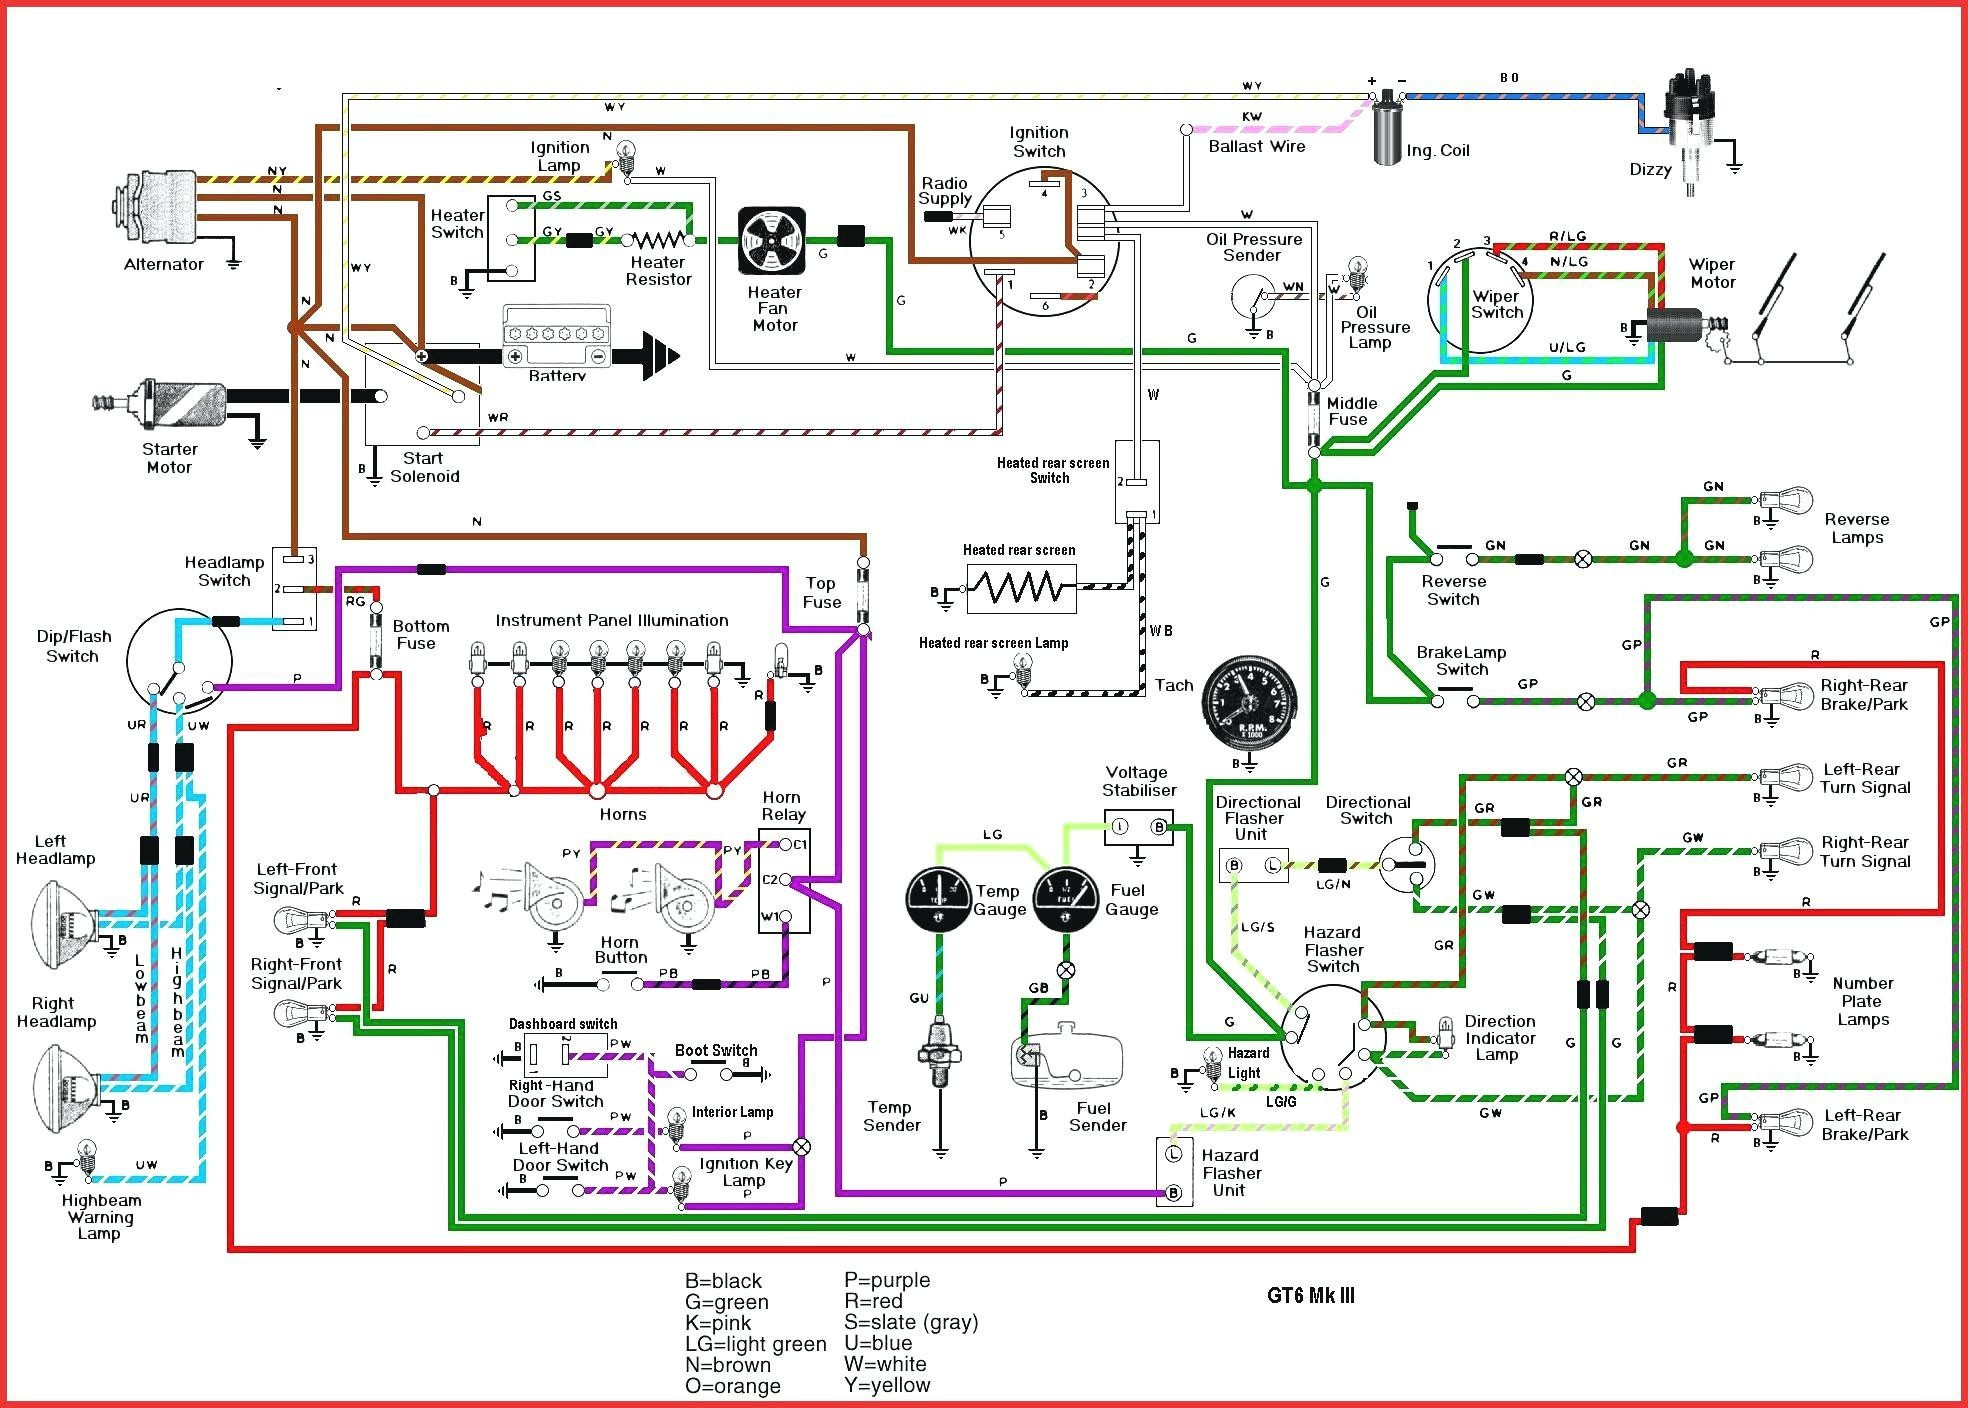 [FPER_4992]  RT_9319] Drag Car Wiring Schematic Basic Wiring Diagram | About Automotive Electrical Wiring Schematics |  | None Inki Isra Mohammedshrine Librar Wiring 101